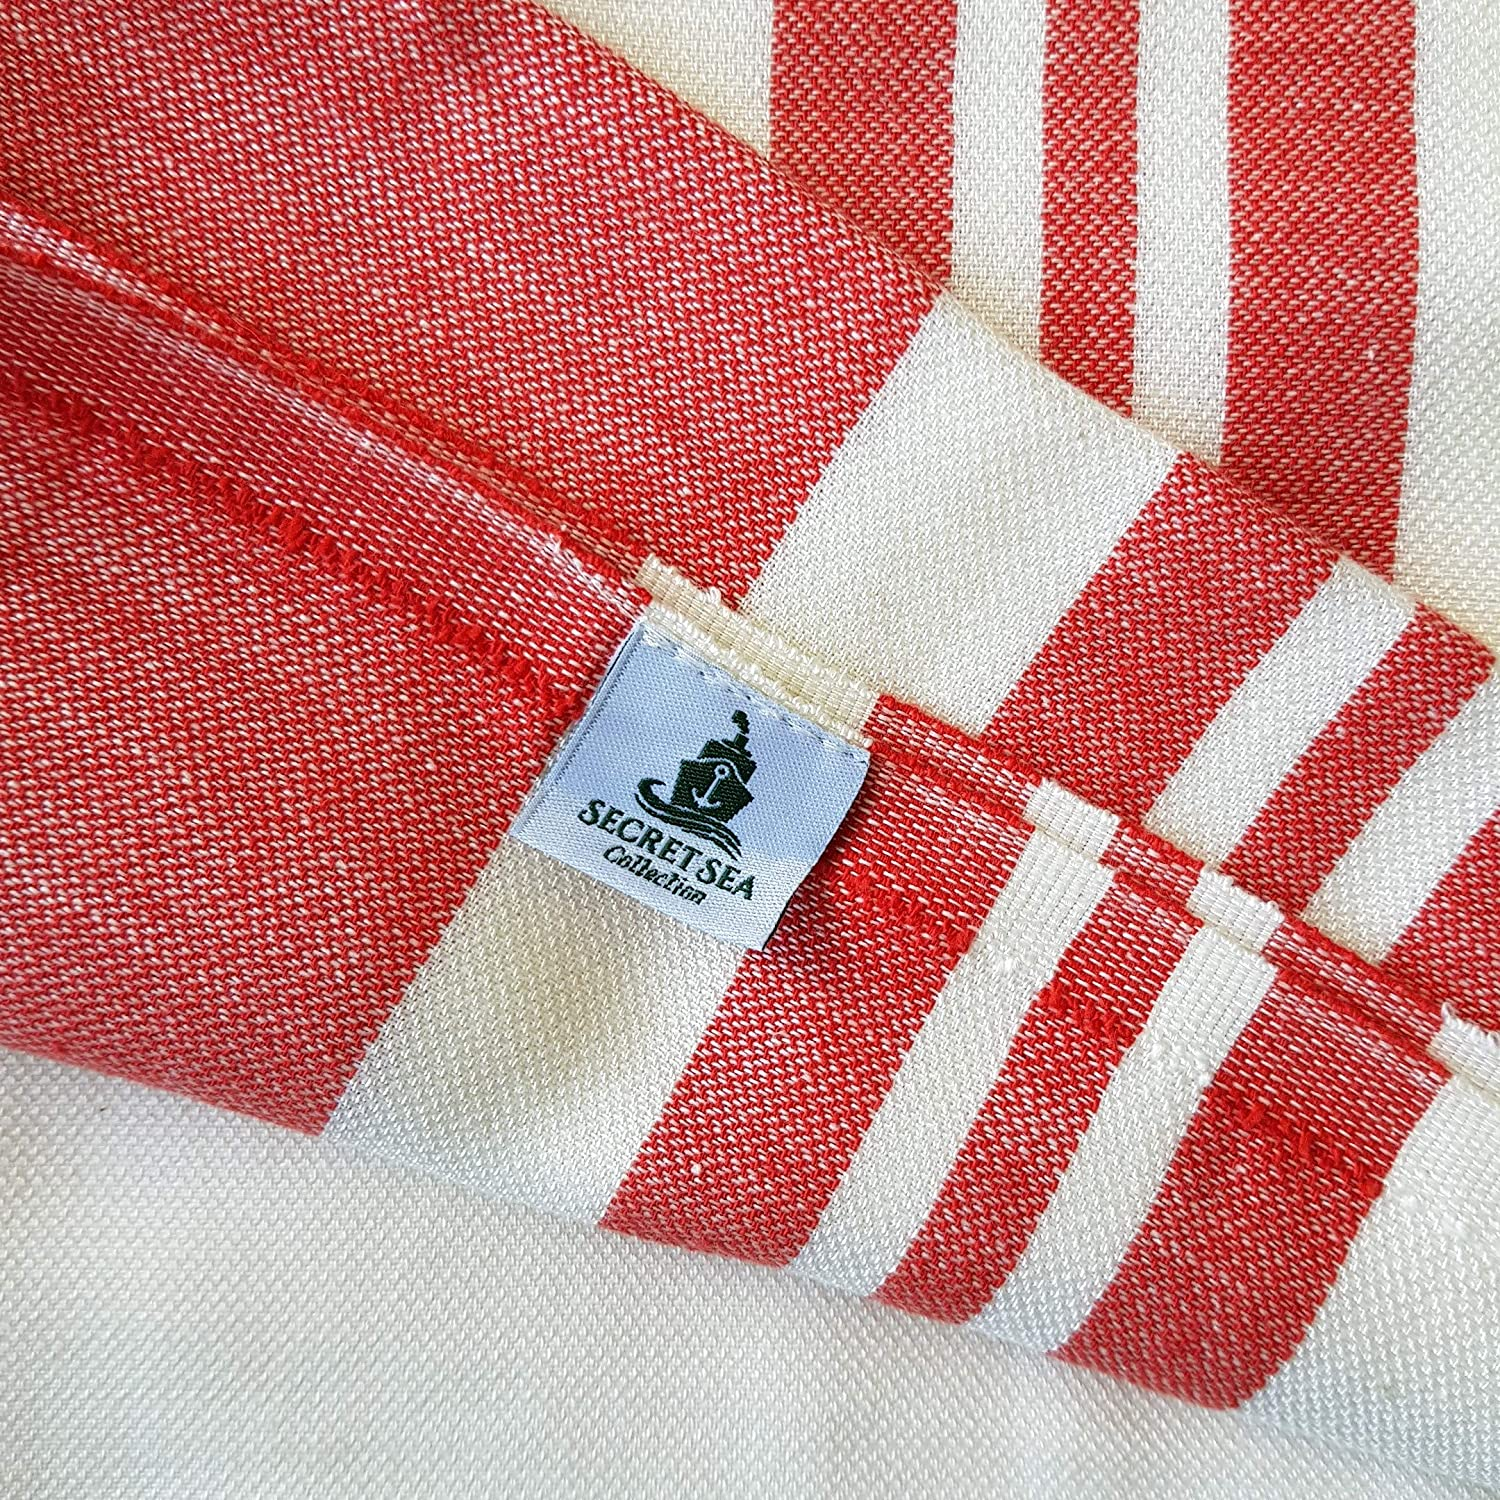 Yoga Pool Fitness Bath Hammam Gym Babycare Secret Sea Collection 100/% Bamboo Towel Peshtemal For Beach Spa Camping Backpacking Pomegranate Red